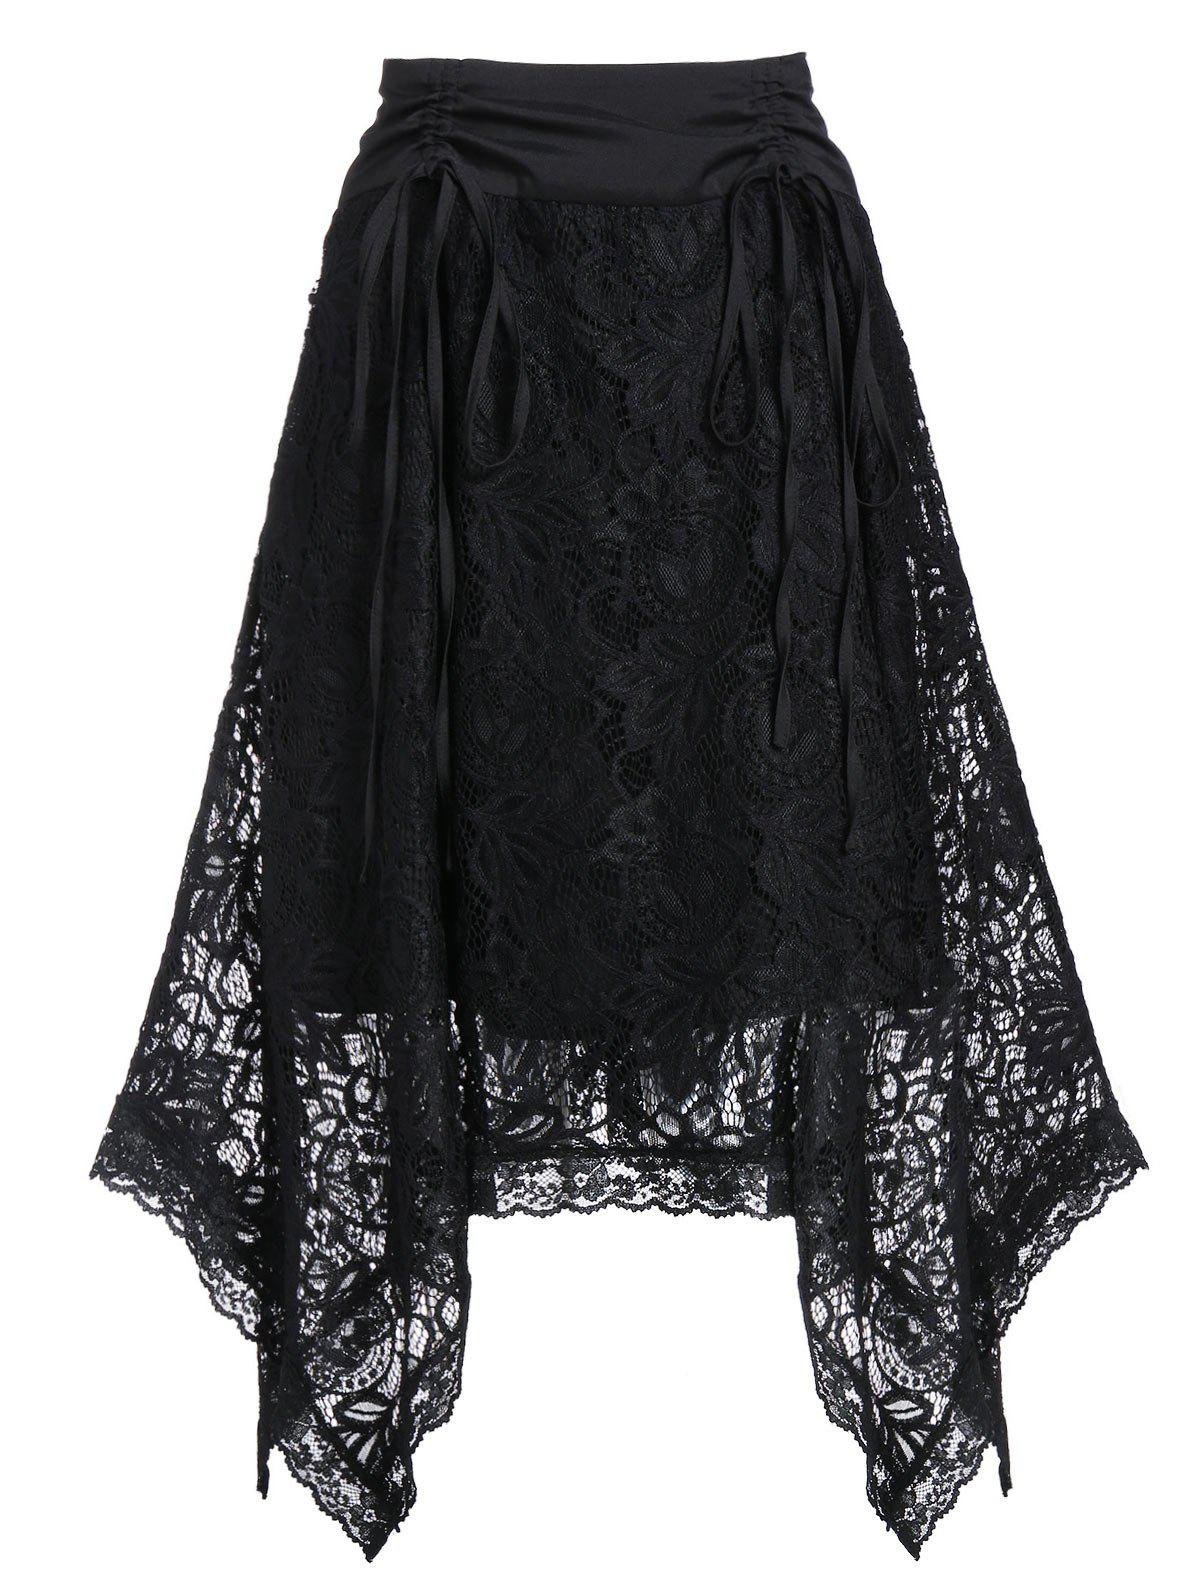 Fancy High Rise Lace Asymmetrical Cinched Skirt